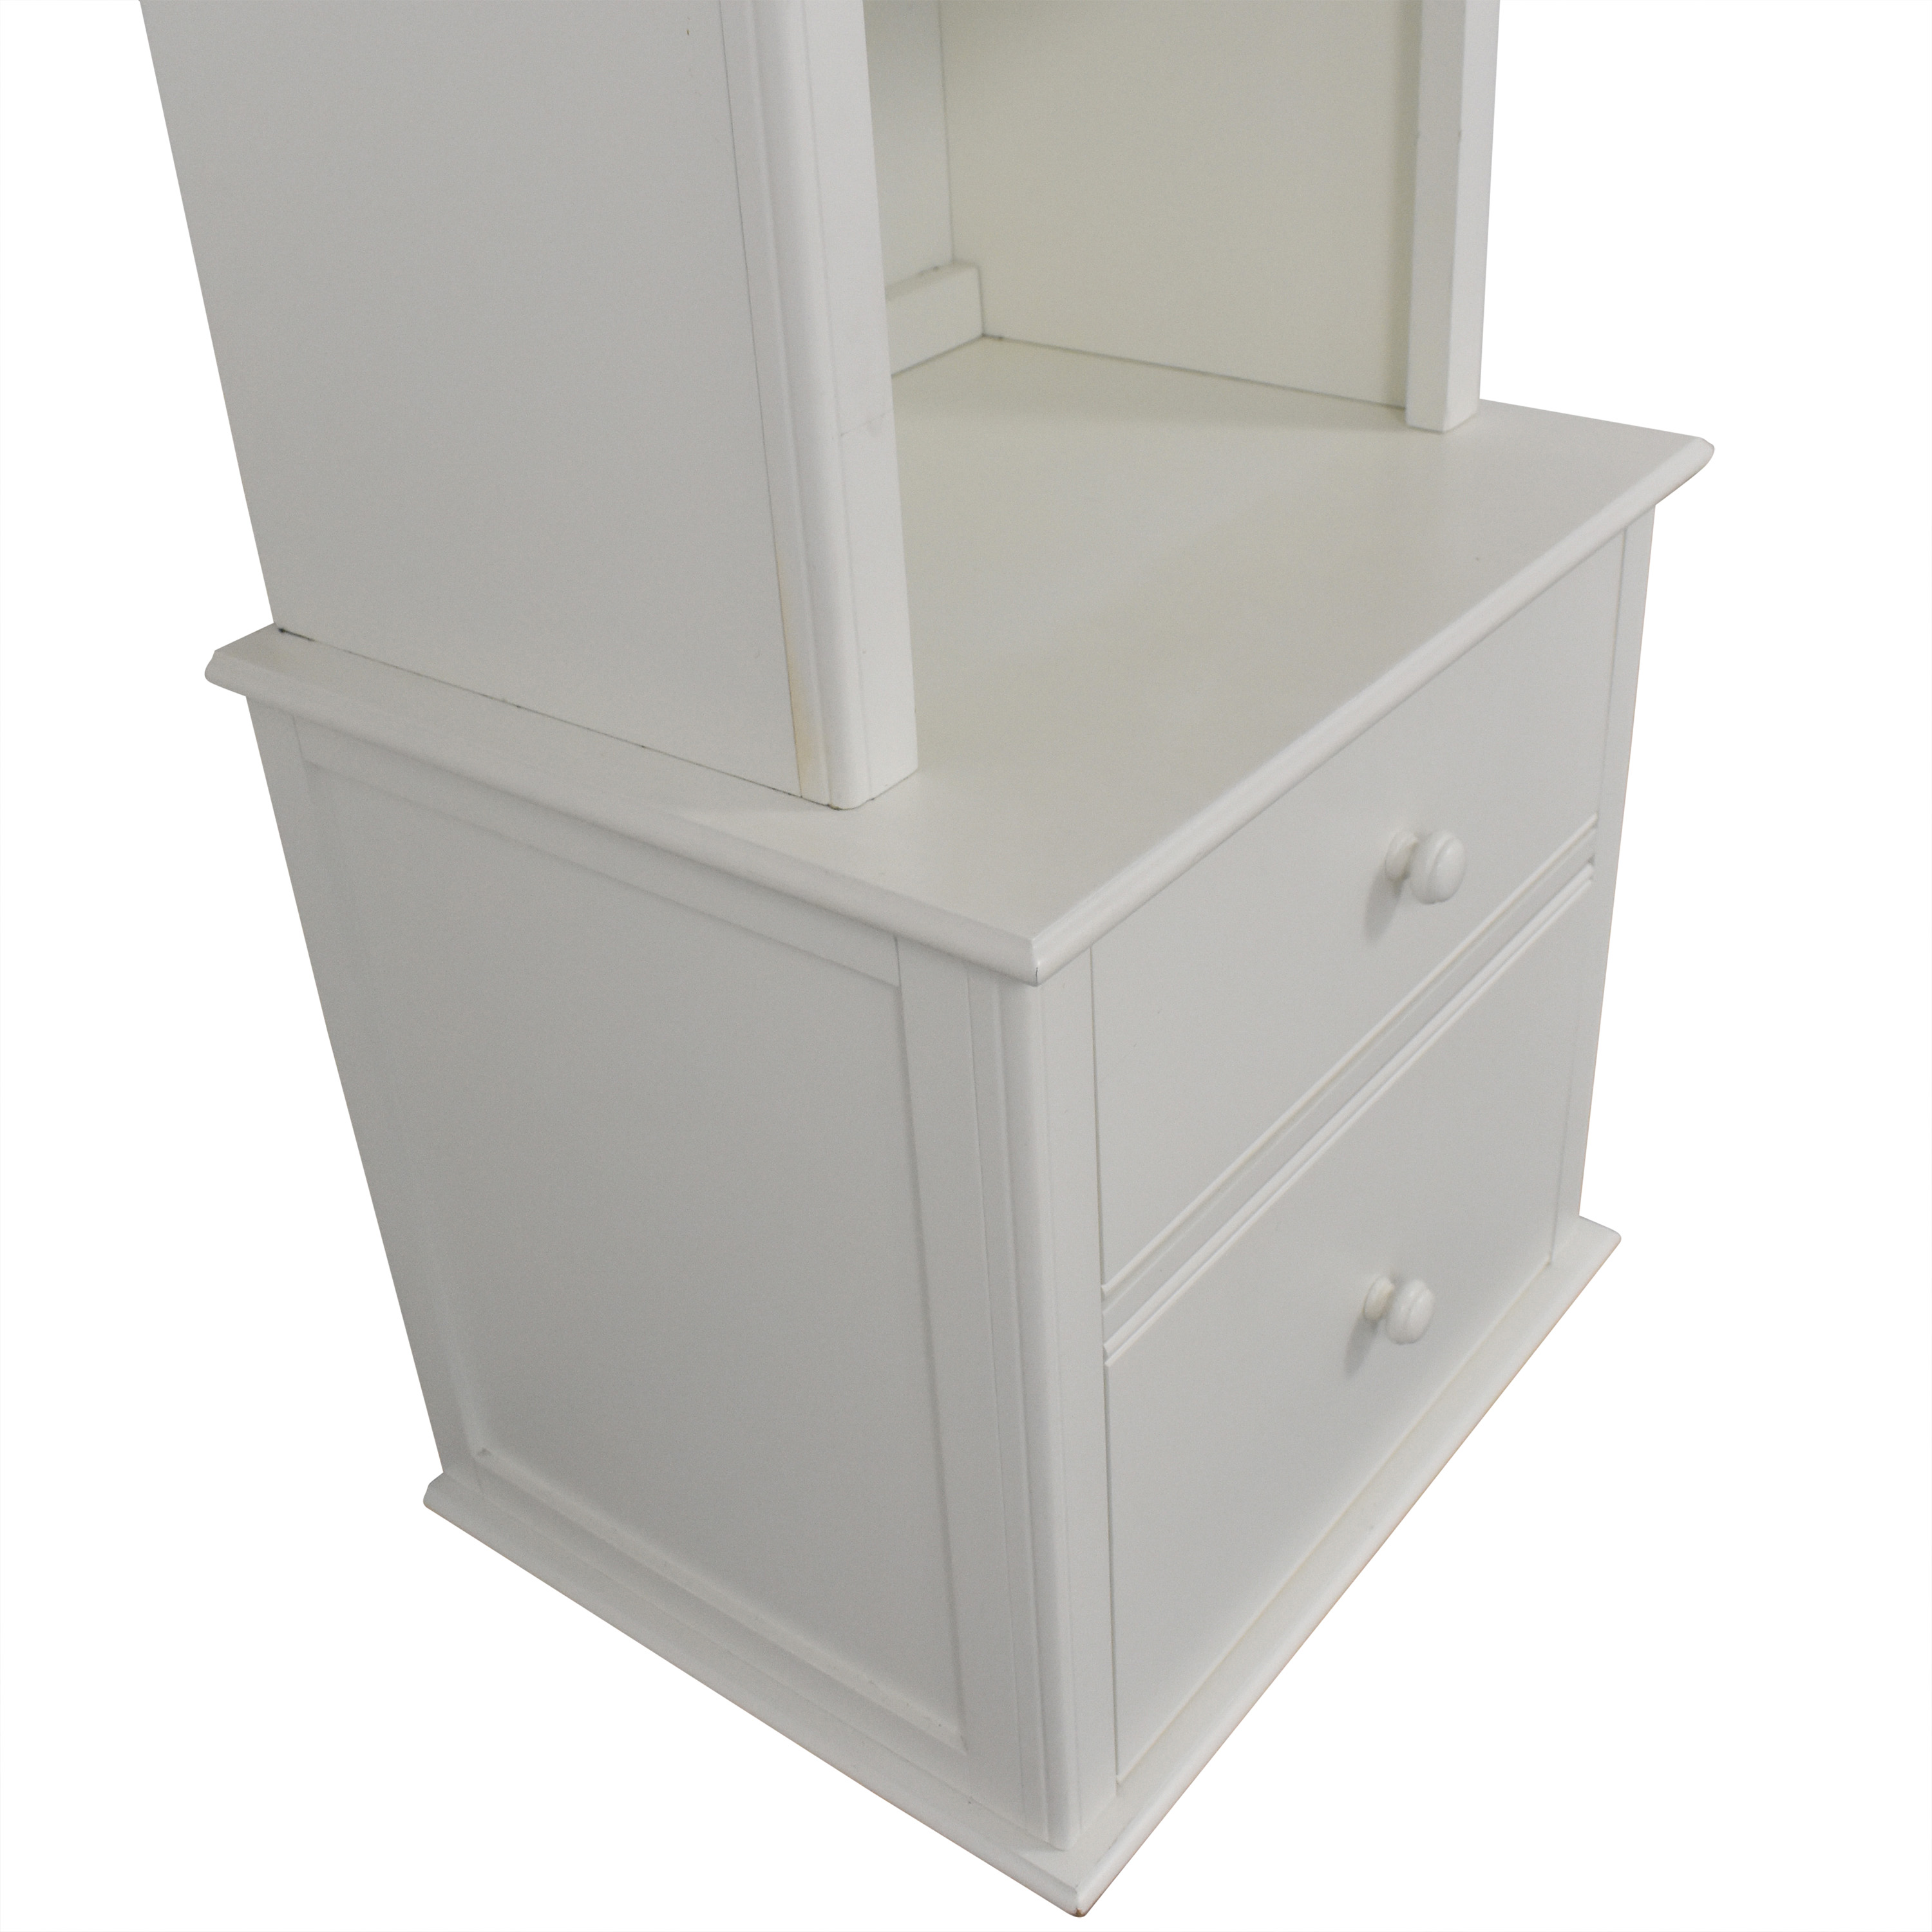 Land of Nod Land of Nod Library Chest Hutch nj